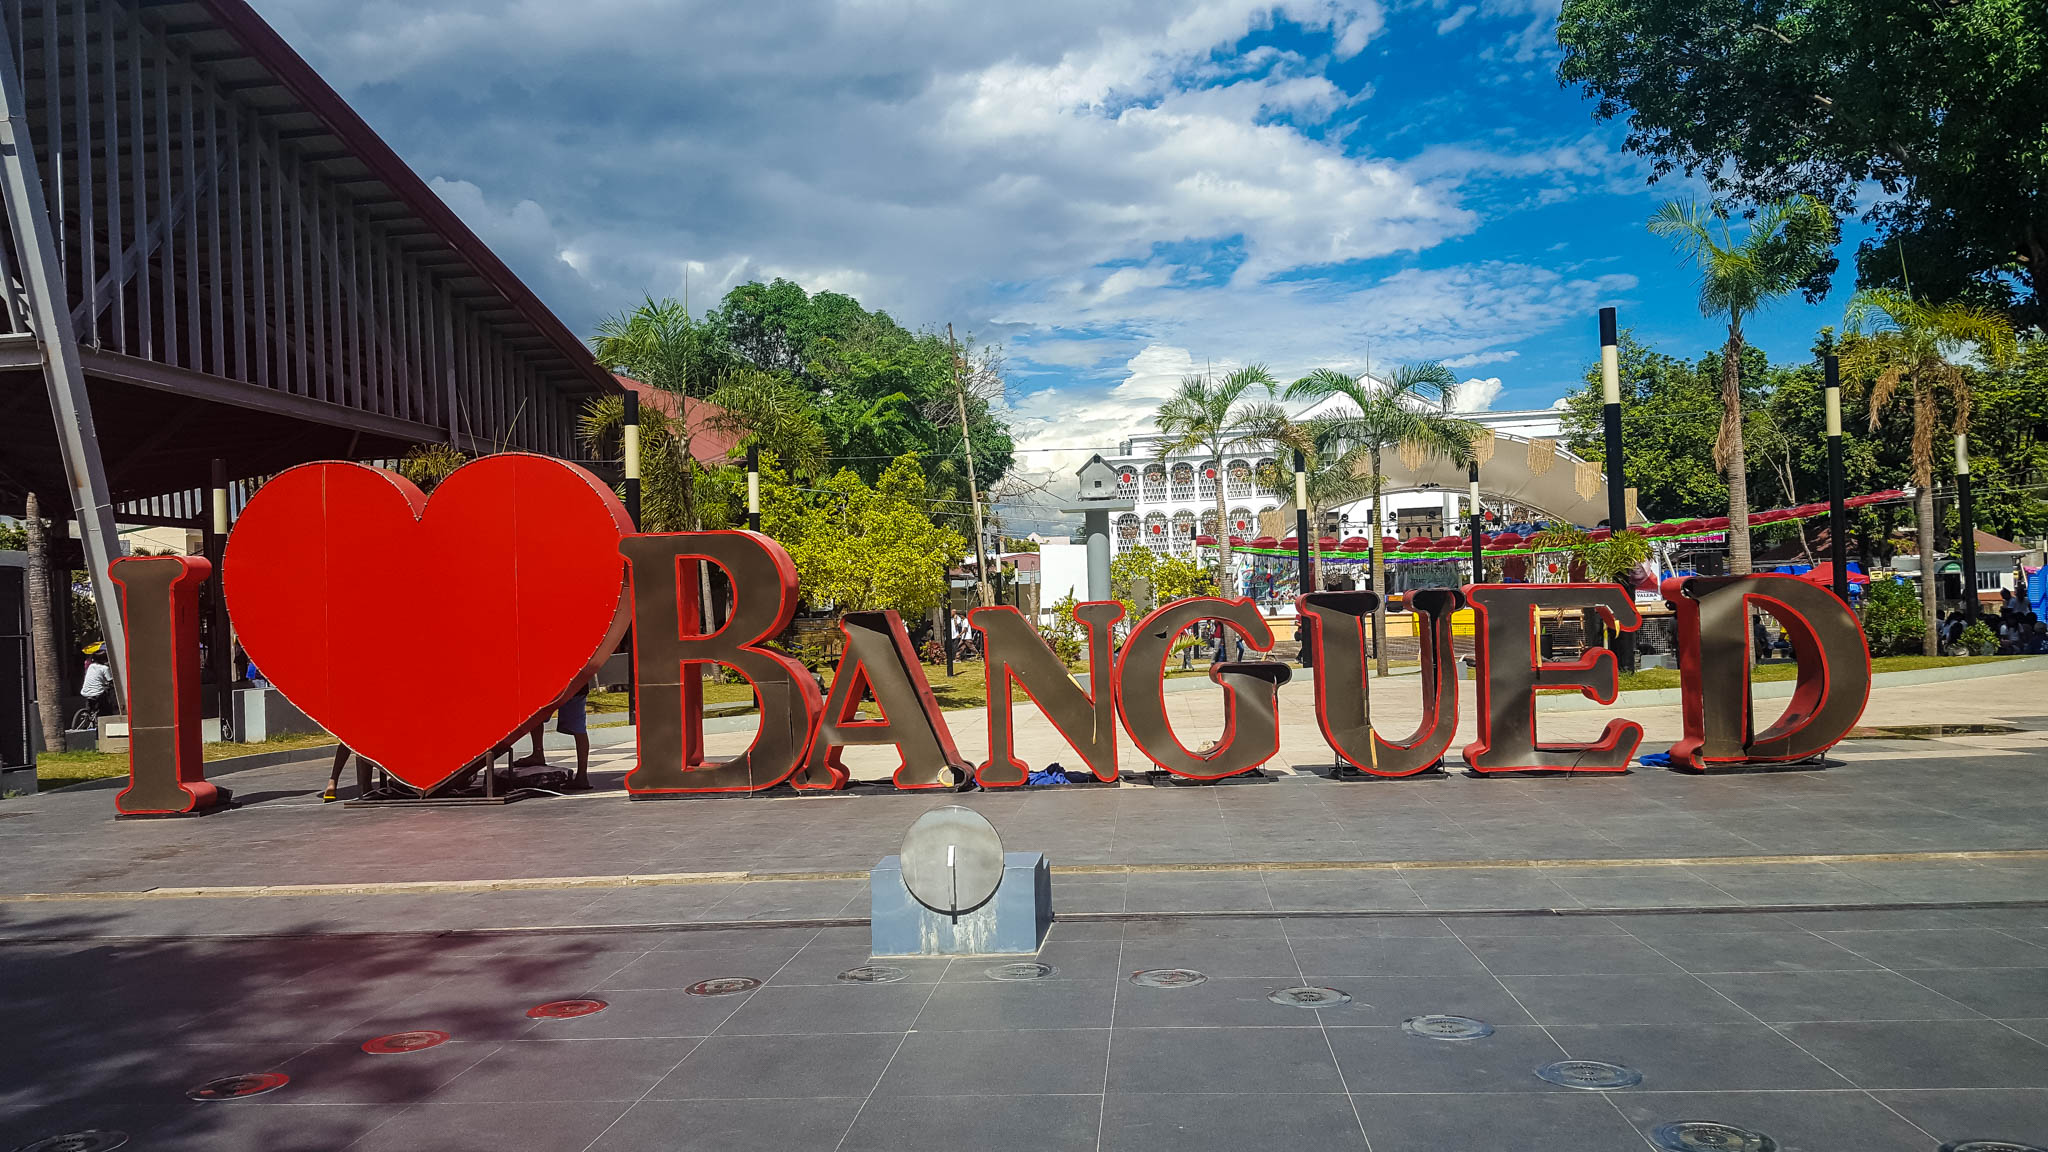 BANGUED 1 (1 of 1)